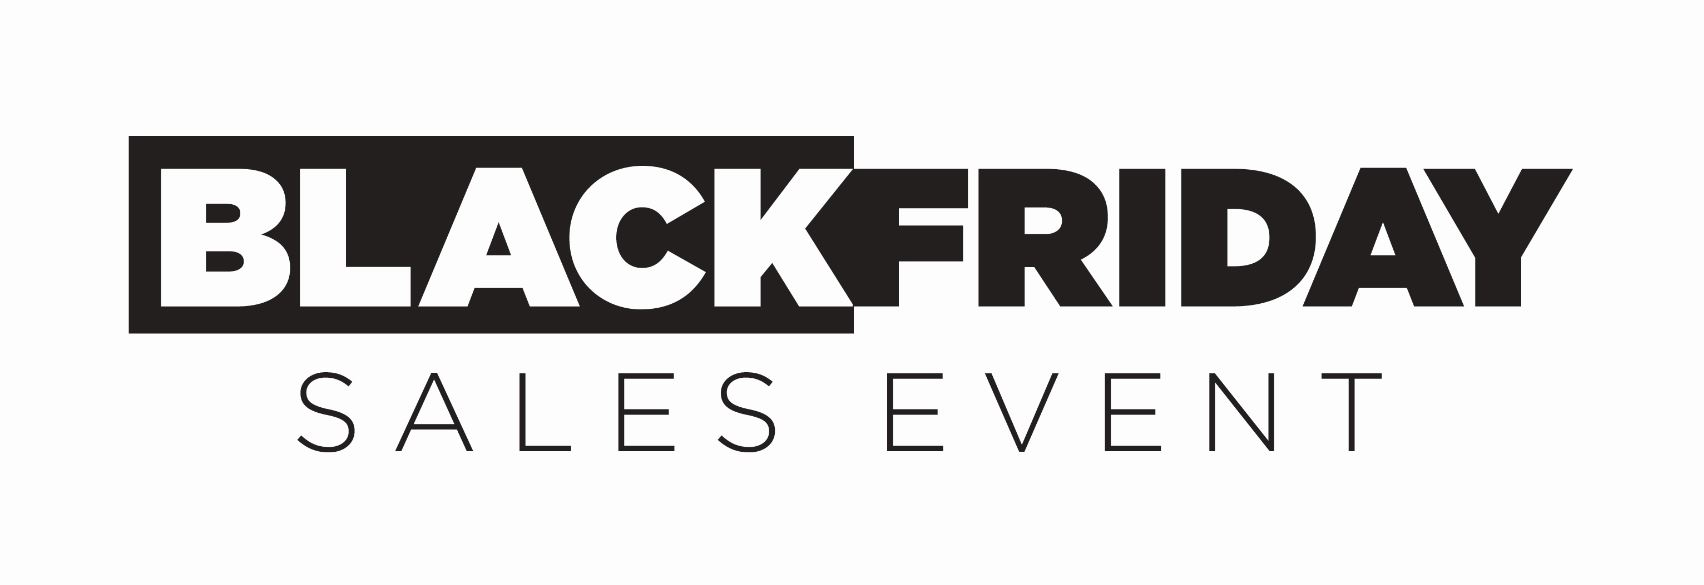 Black Friday Sale Black Friday Sales Event Washington Nj John Johnson Dcjr